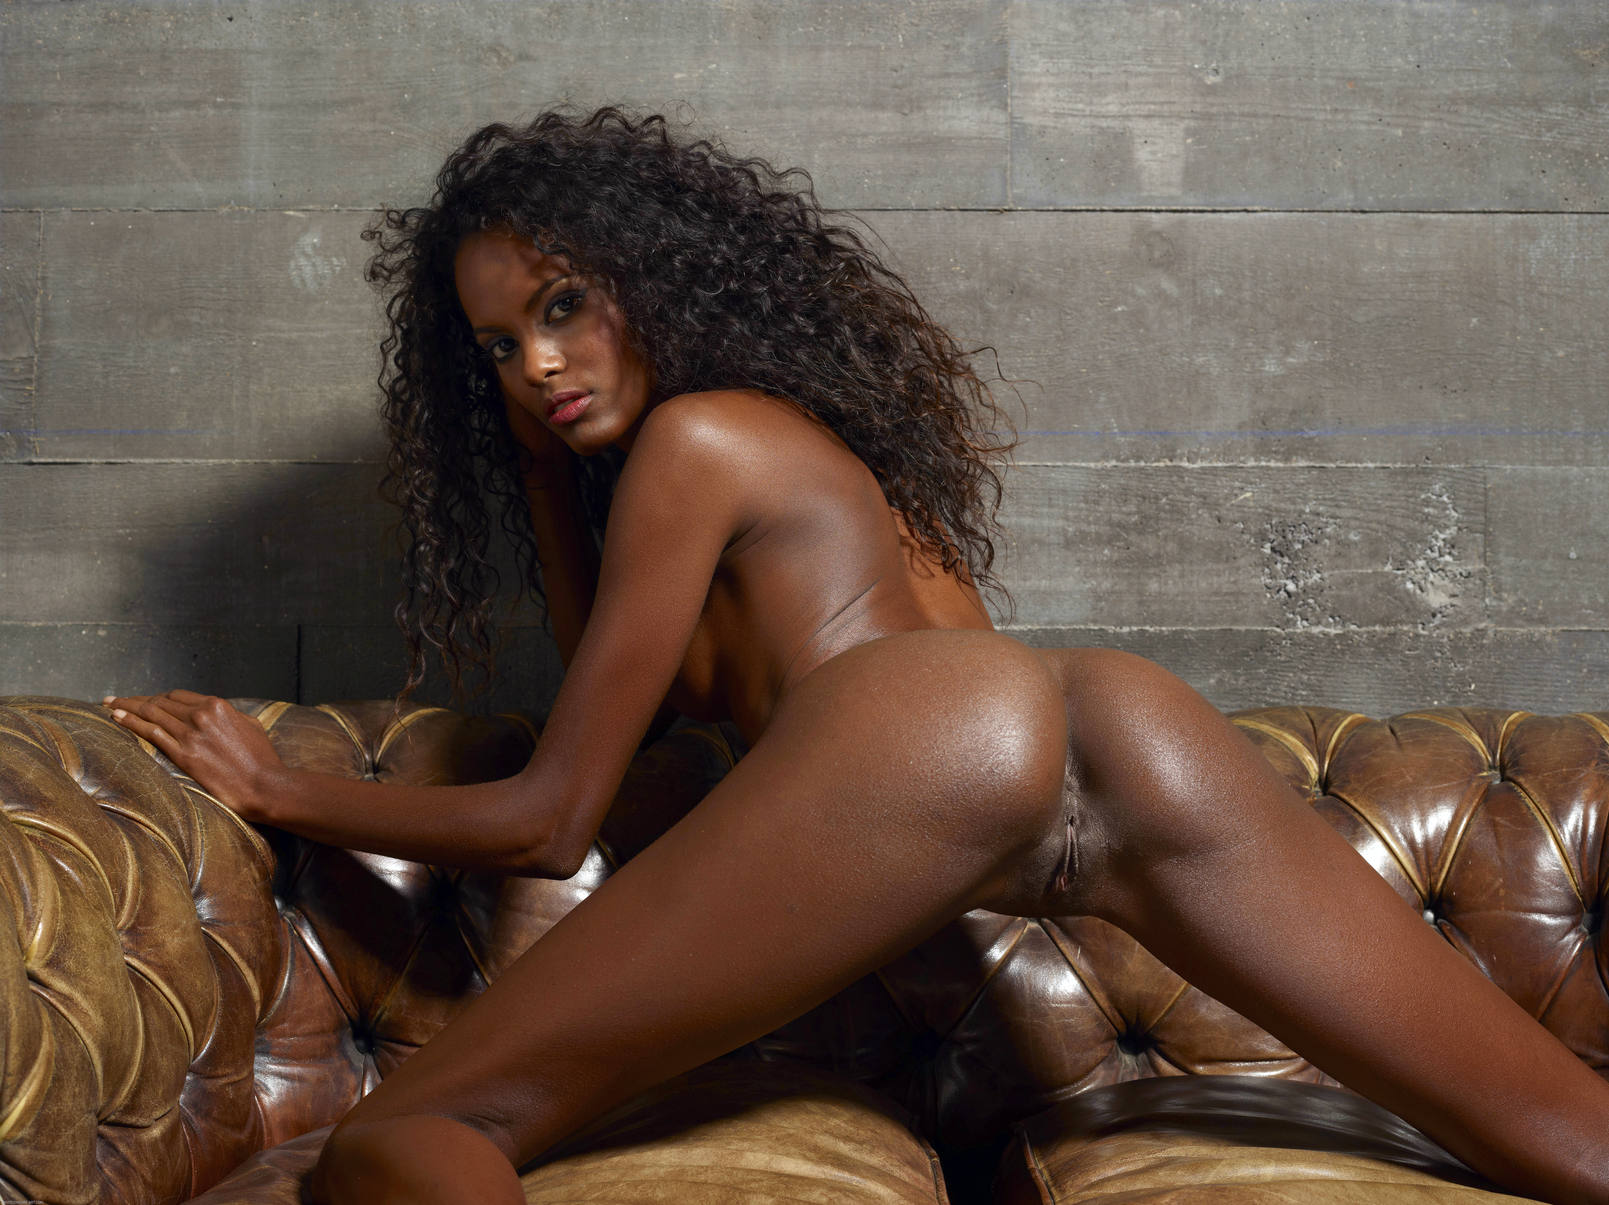 A Very Fat And Black Women Naked